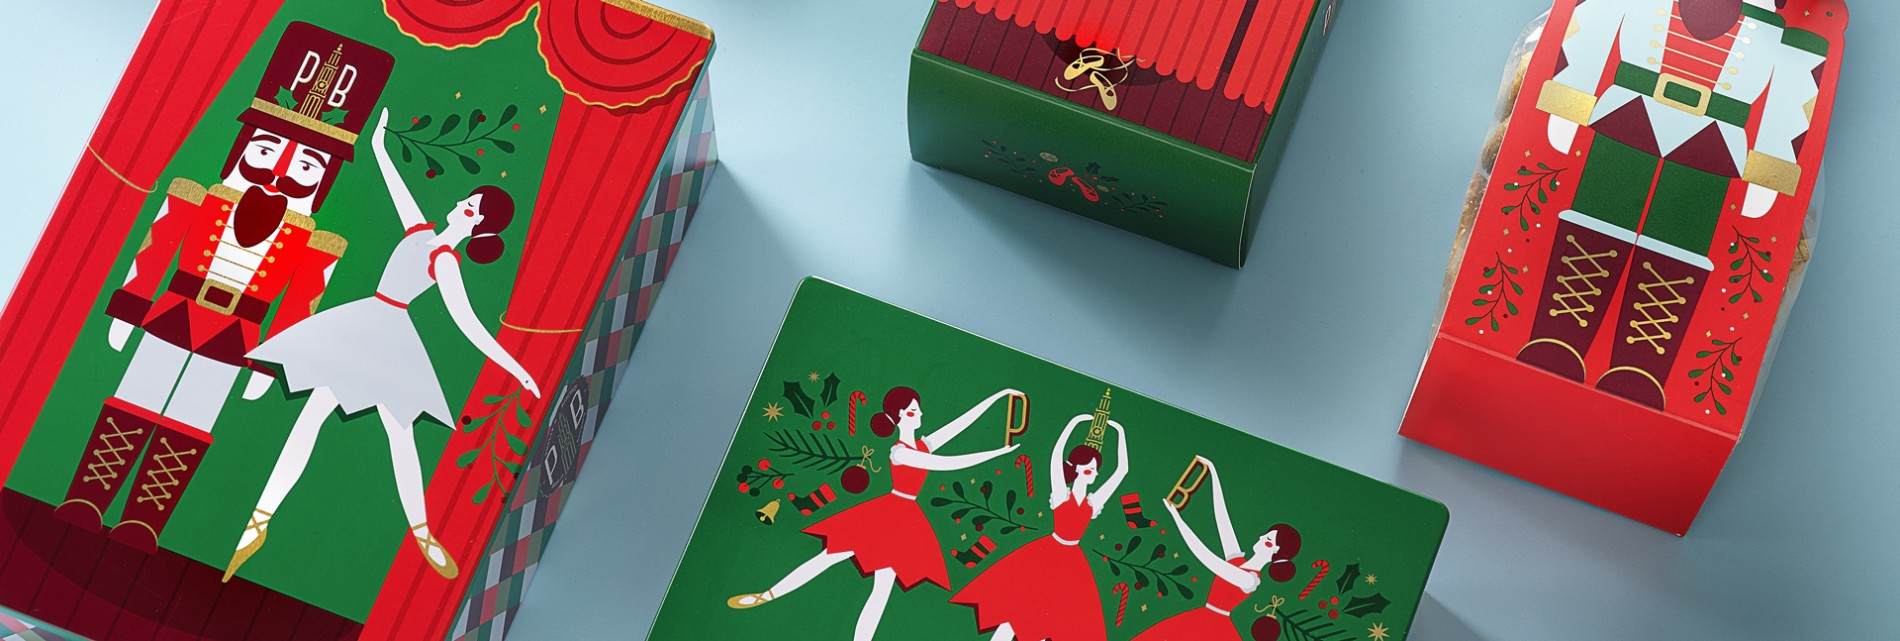 Quatre Mains package design - Package design philips biscuits, nutcracker, end of year